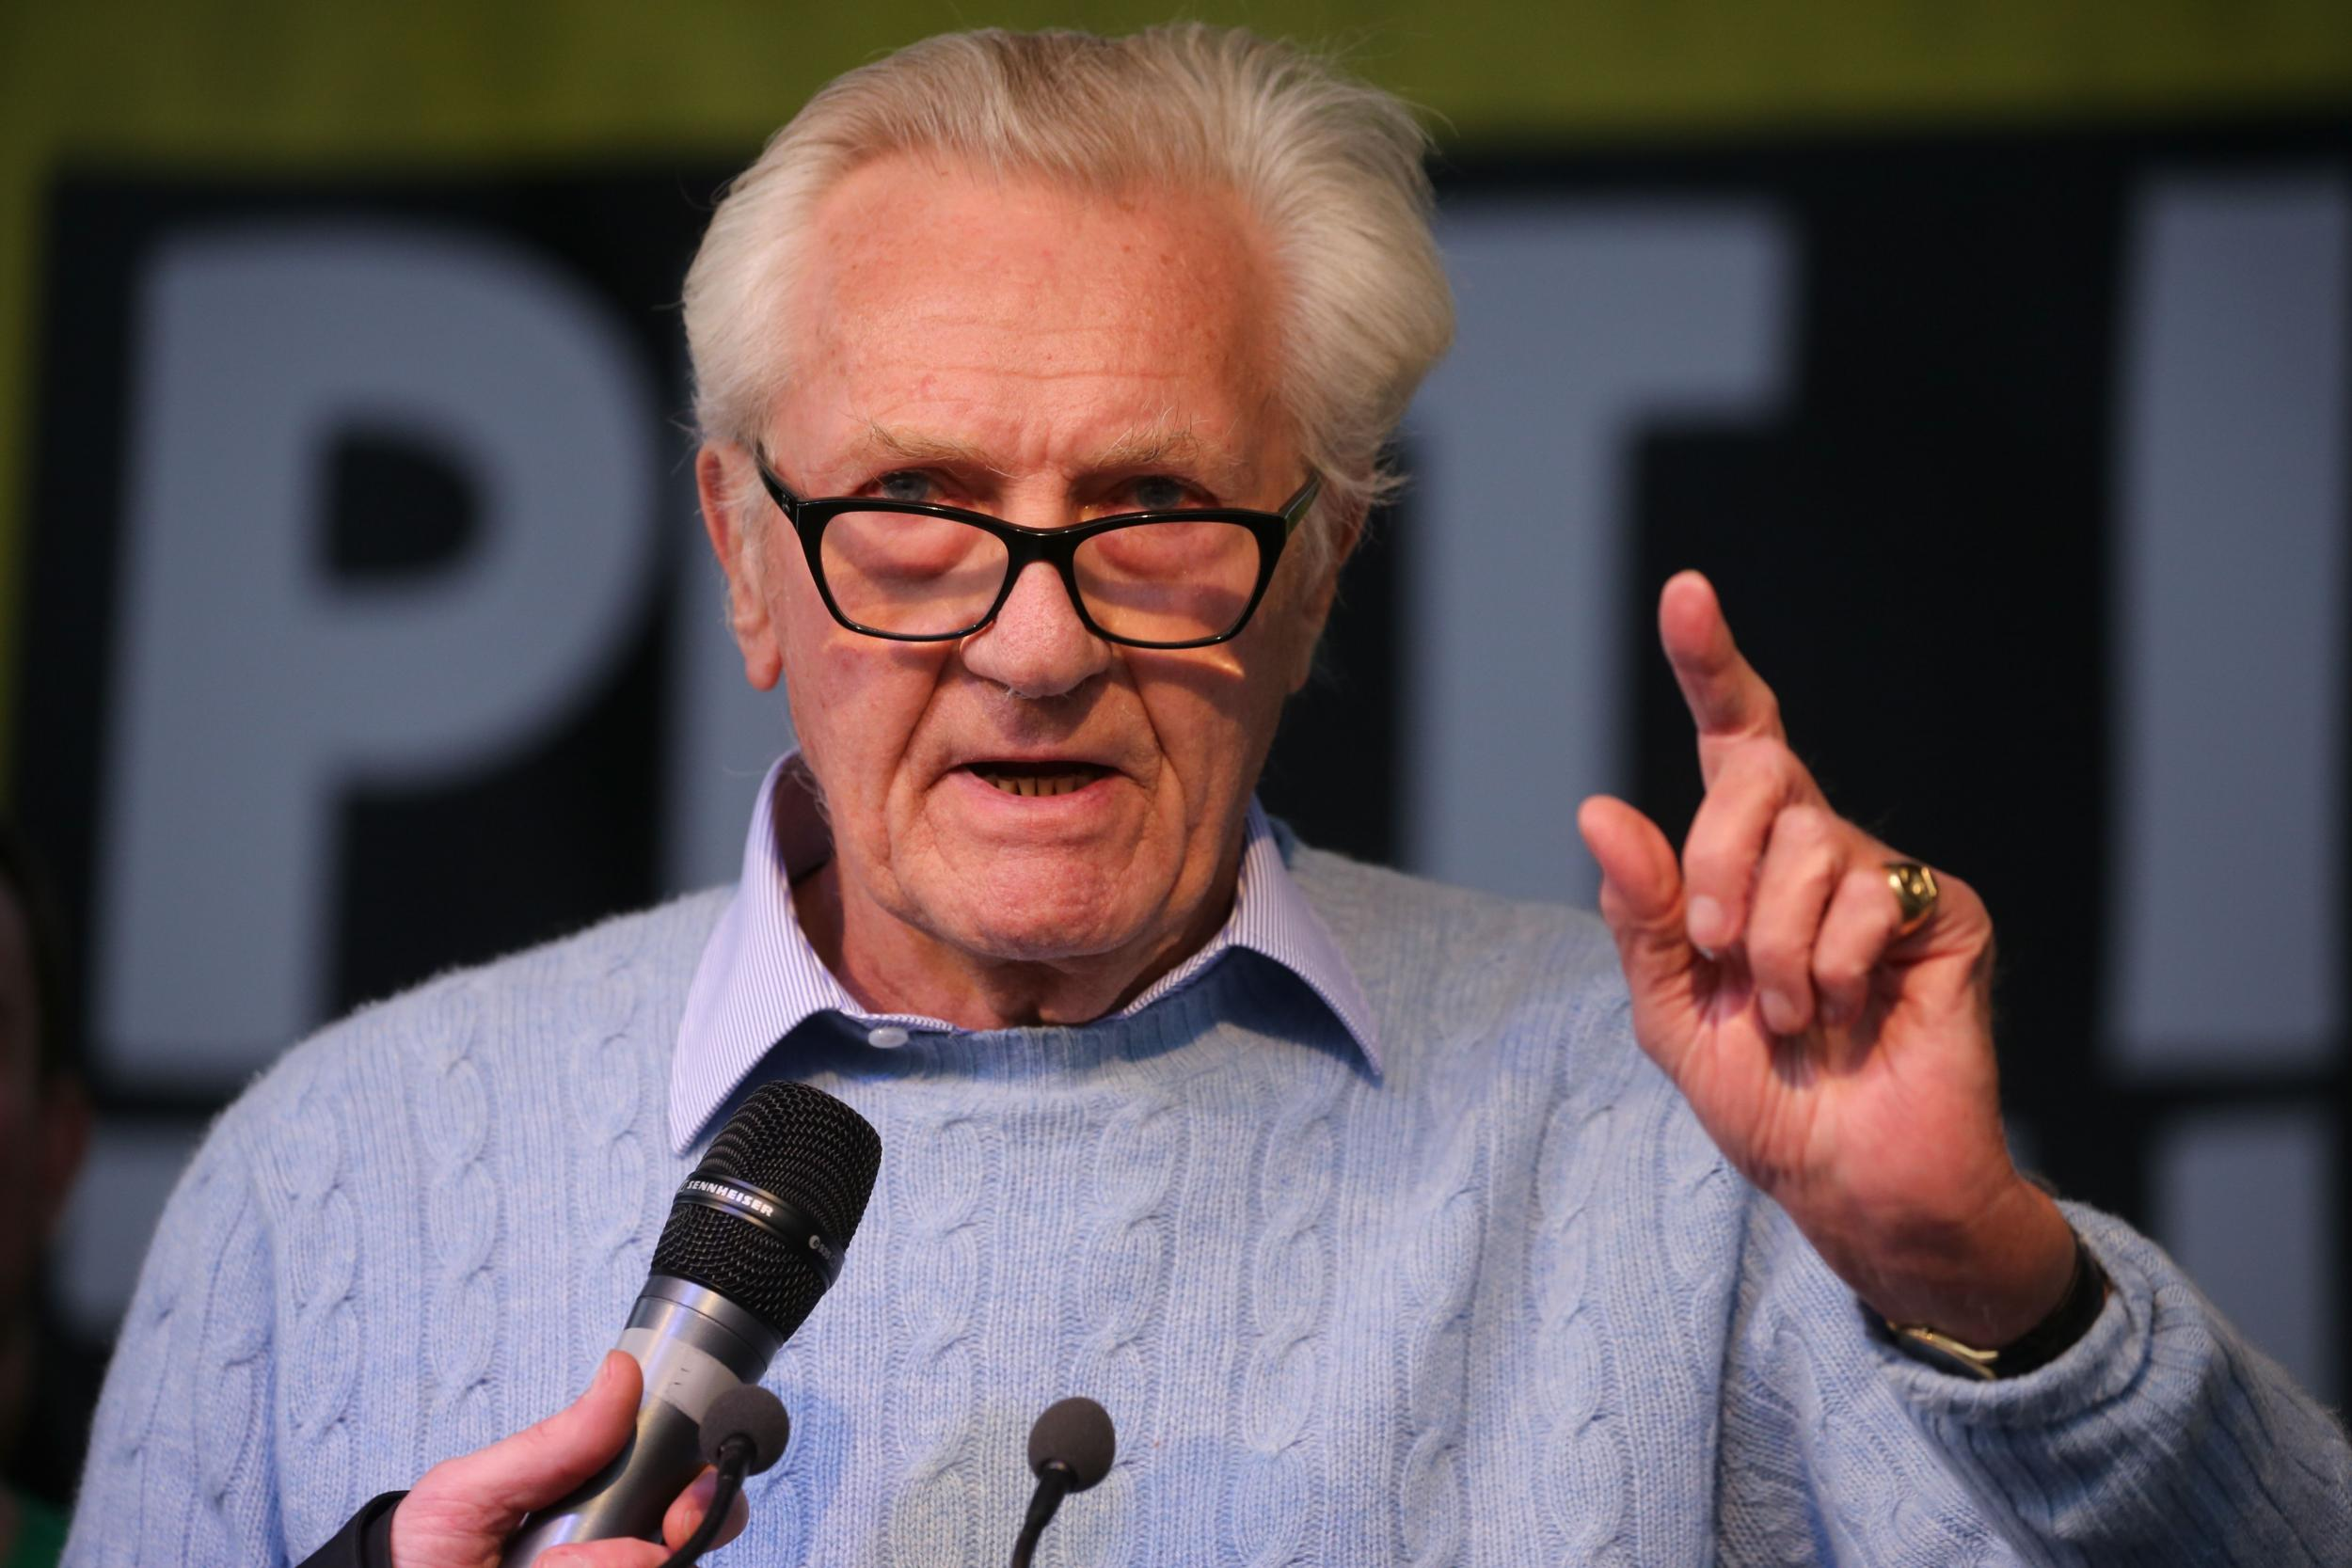 Brexit: Michael Heseltine writes to every Conservative MP urging them to vote down Boris Johnson's deal